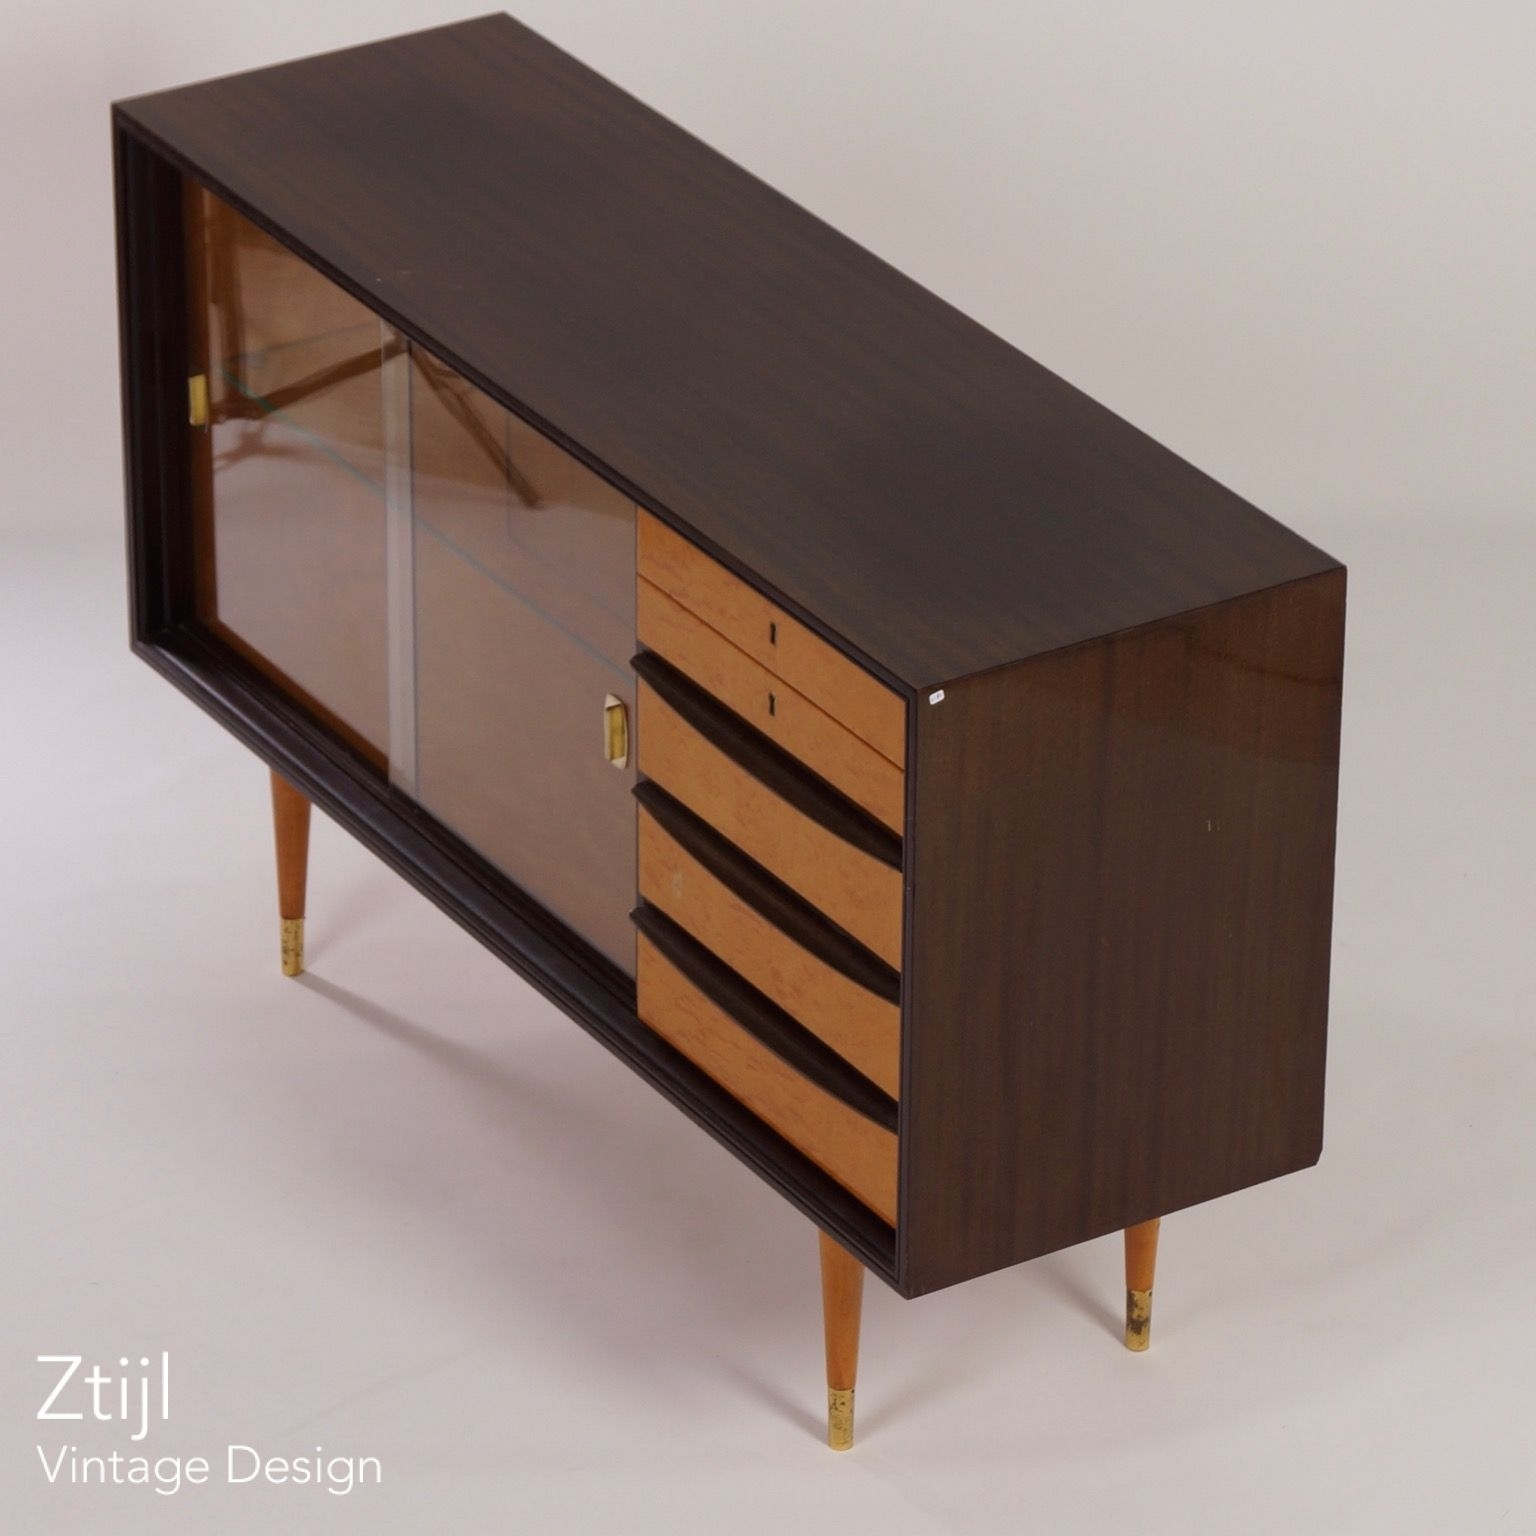 Mahogany Sideboard With Showcase And Brass Details, 1960S - Vintage regarding Vintage 8 Glass Sideboards (Image 17 of 30)